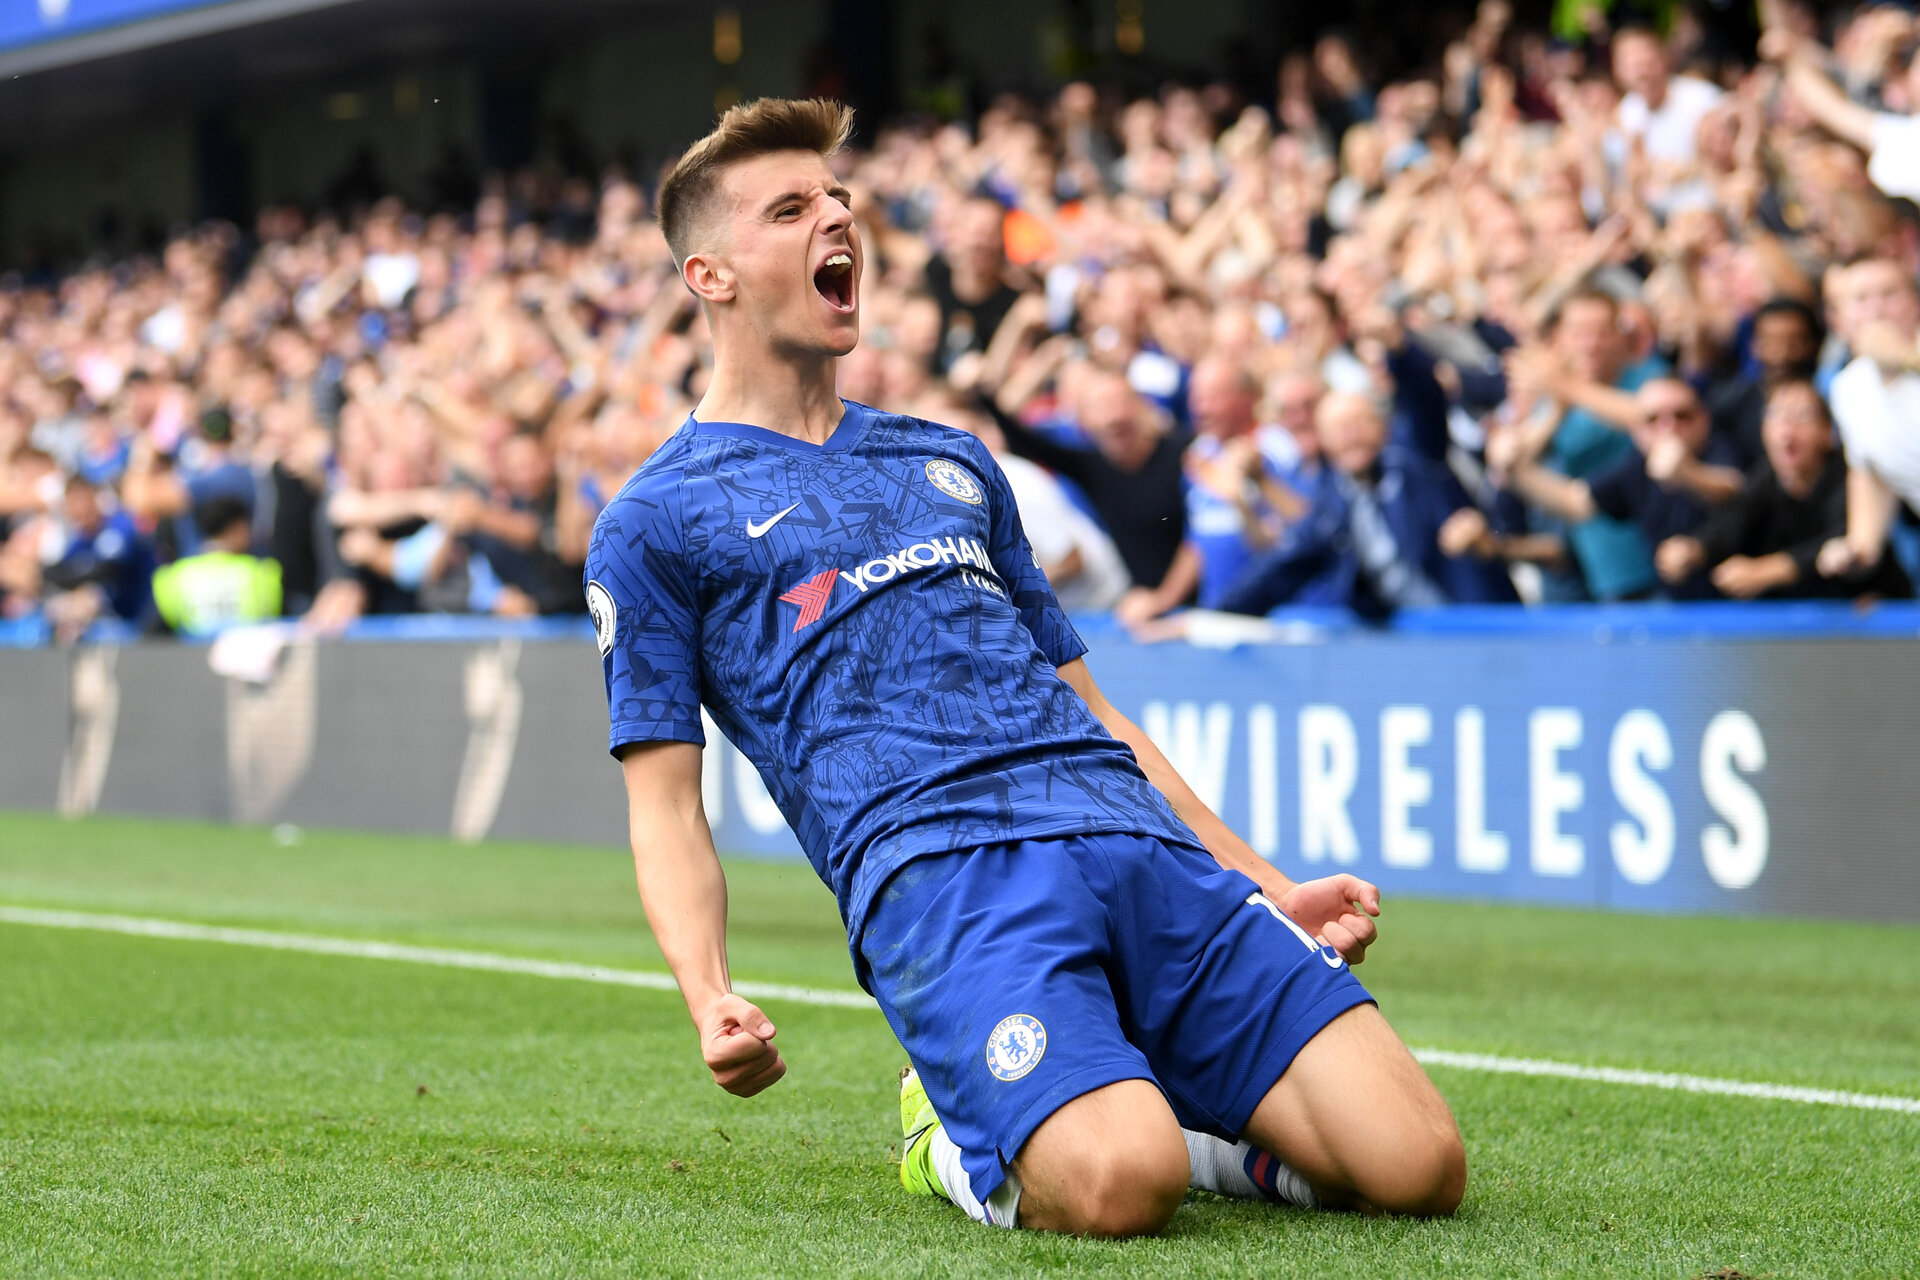 LONDON, ENGLAND - AUGUST 18: Mason Mount of Chelsea celebrates after scoring his team's first goal during the Premier League match between Chelsea FC and Leicester City at Stamford Bridge on August 18, 2019 in London, United Kingdom. (Photo by Michael Regan/Getty Images)